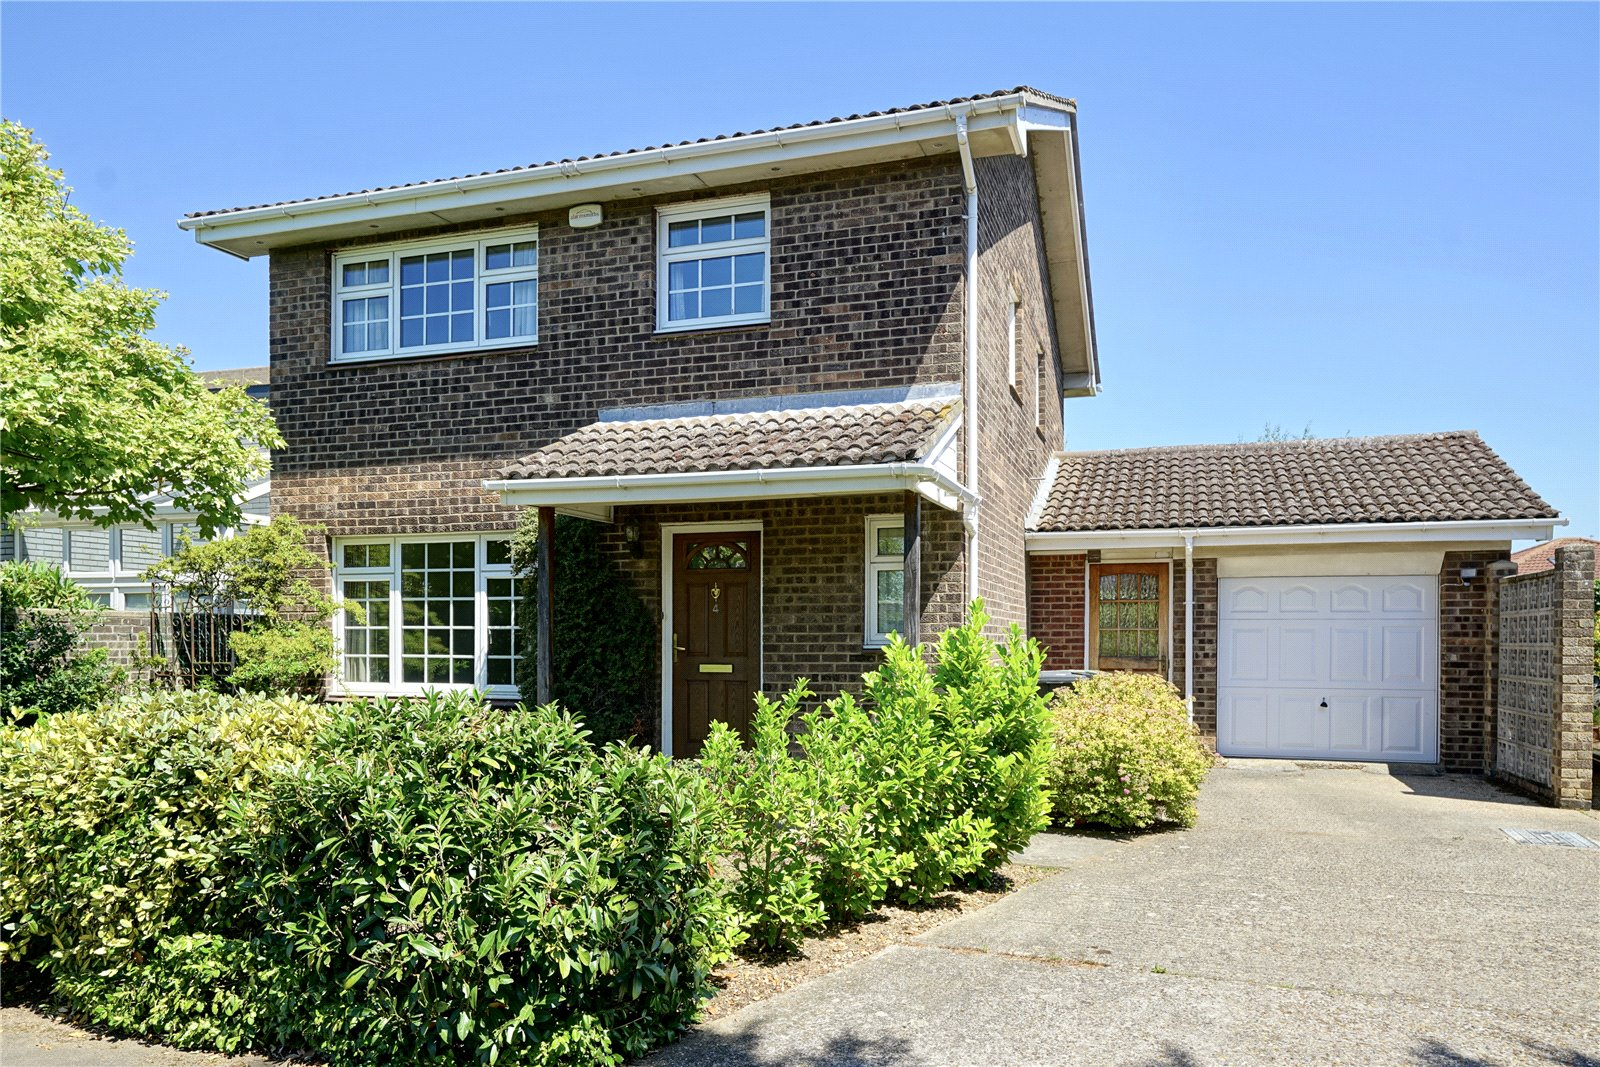 4 bed house for sale in All Hallows, Sandy - Property Image 1